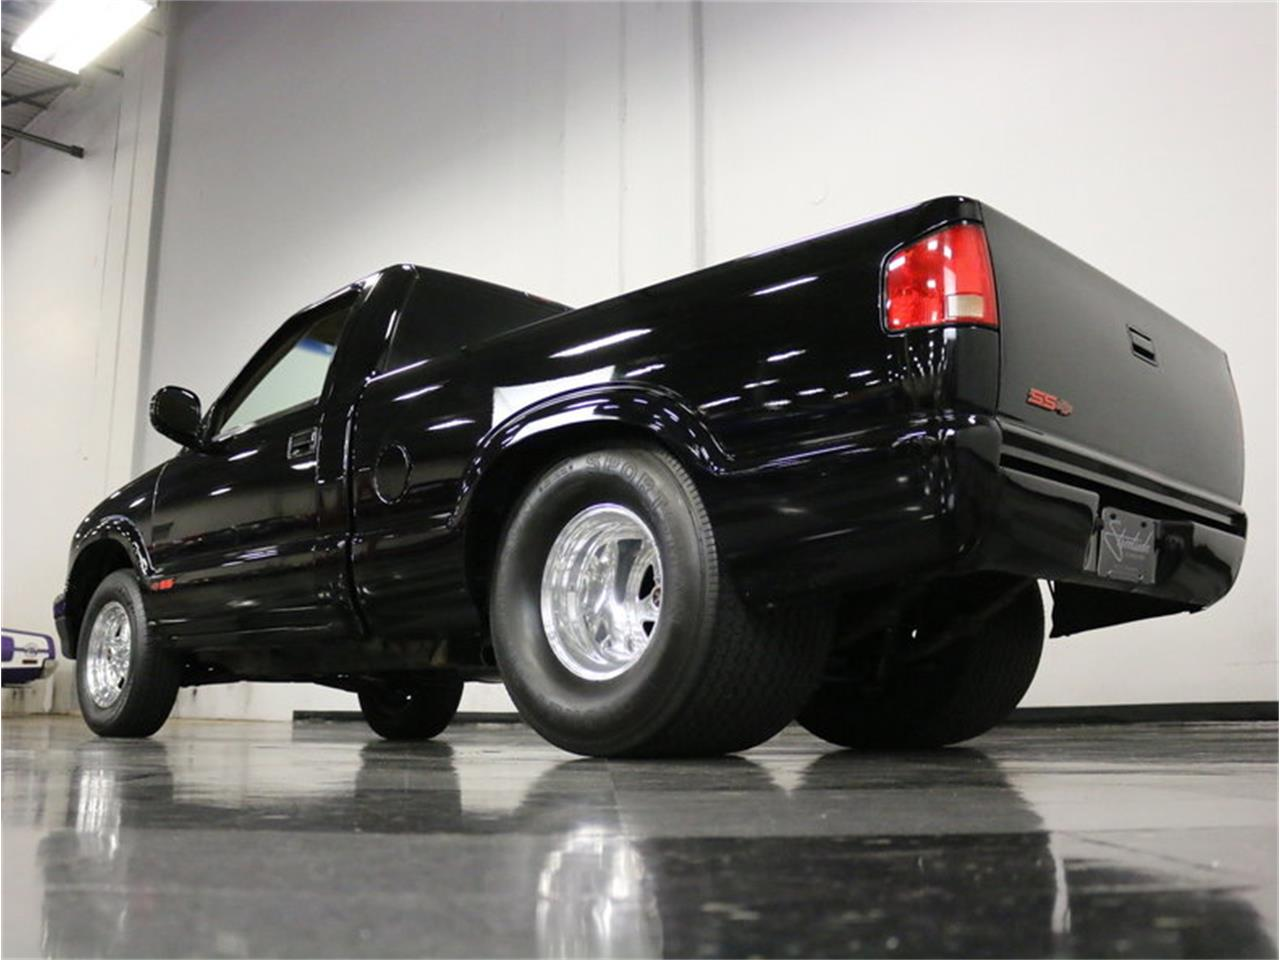 Large Picture of '95 Chevrolet S-10 SS Pro Street - $17,995.00 Offered by Streetside Classics - Dallas / Fort Worth - MOBZ